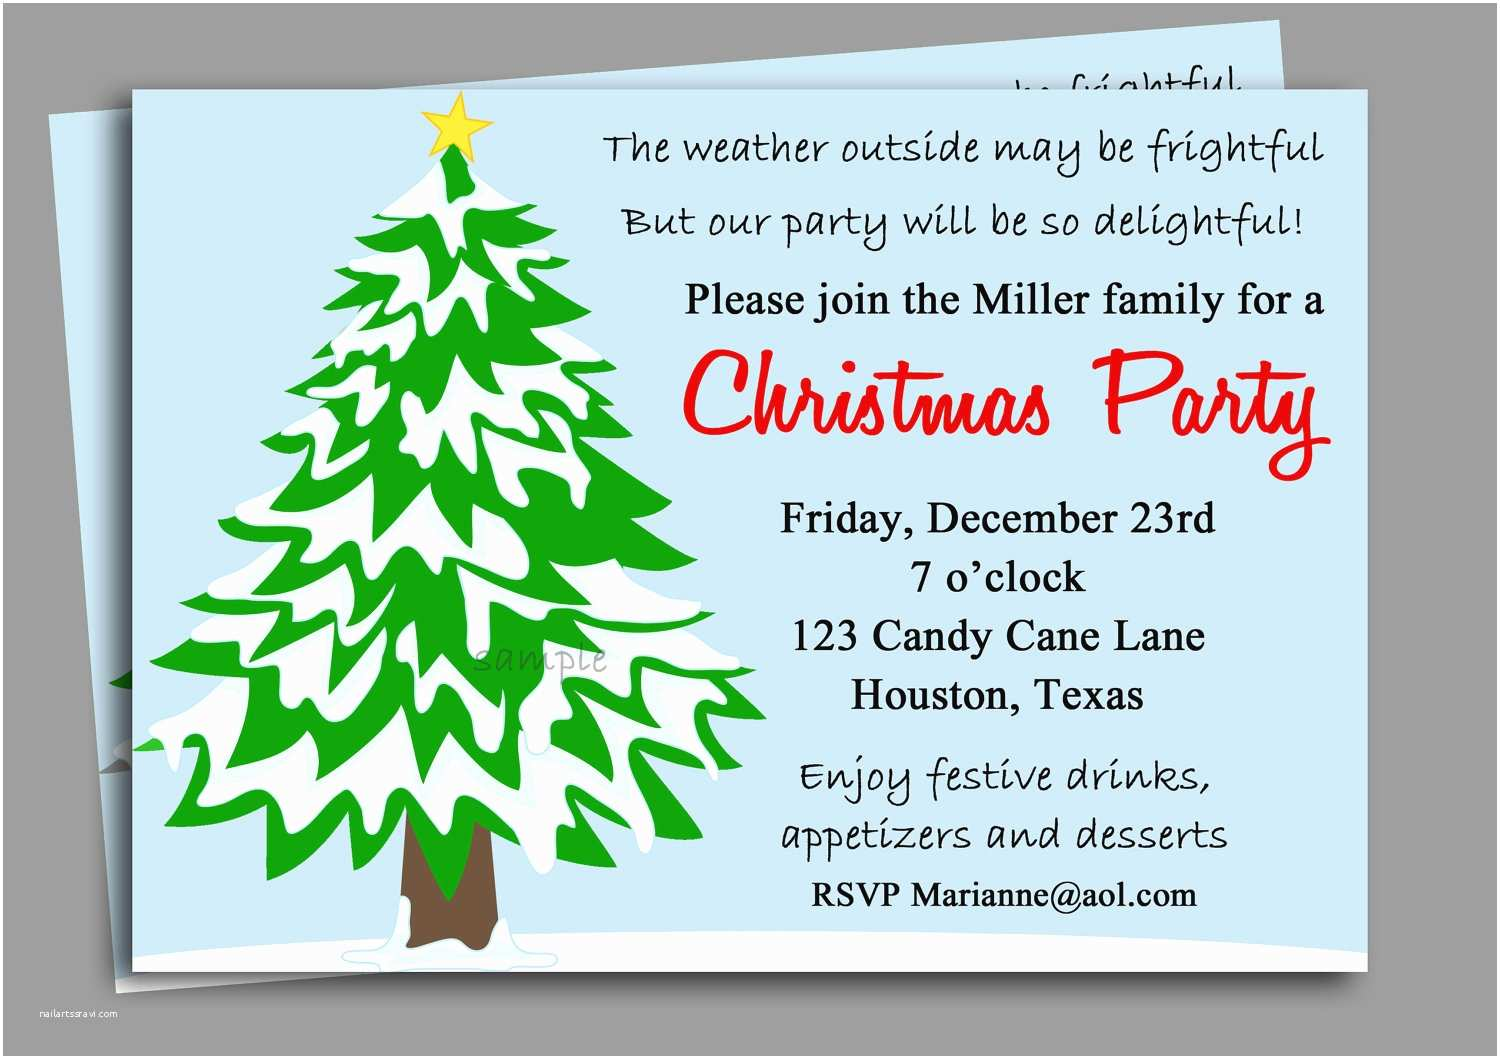 Holiday Party Invitation Wording Funny Christmas Party Invitation Wording Ideas